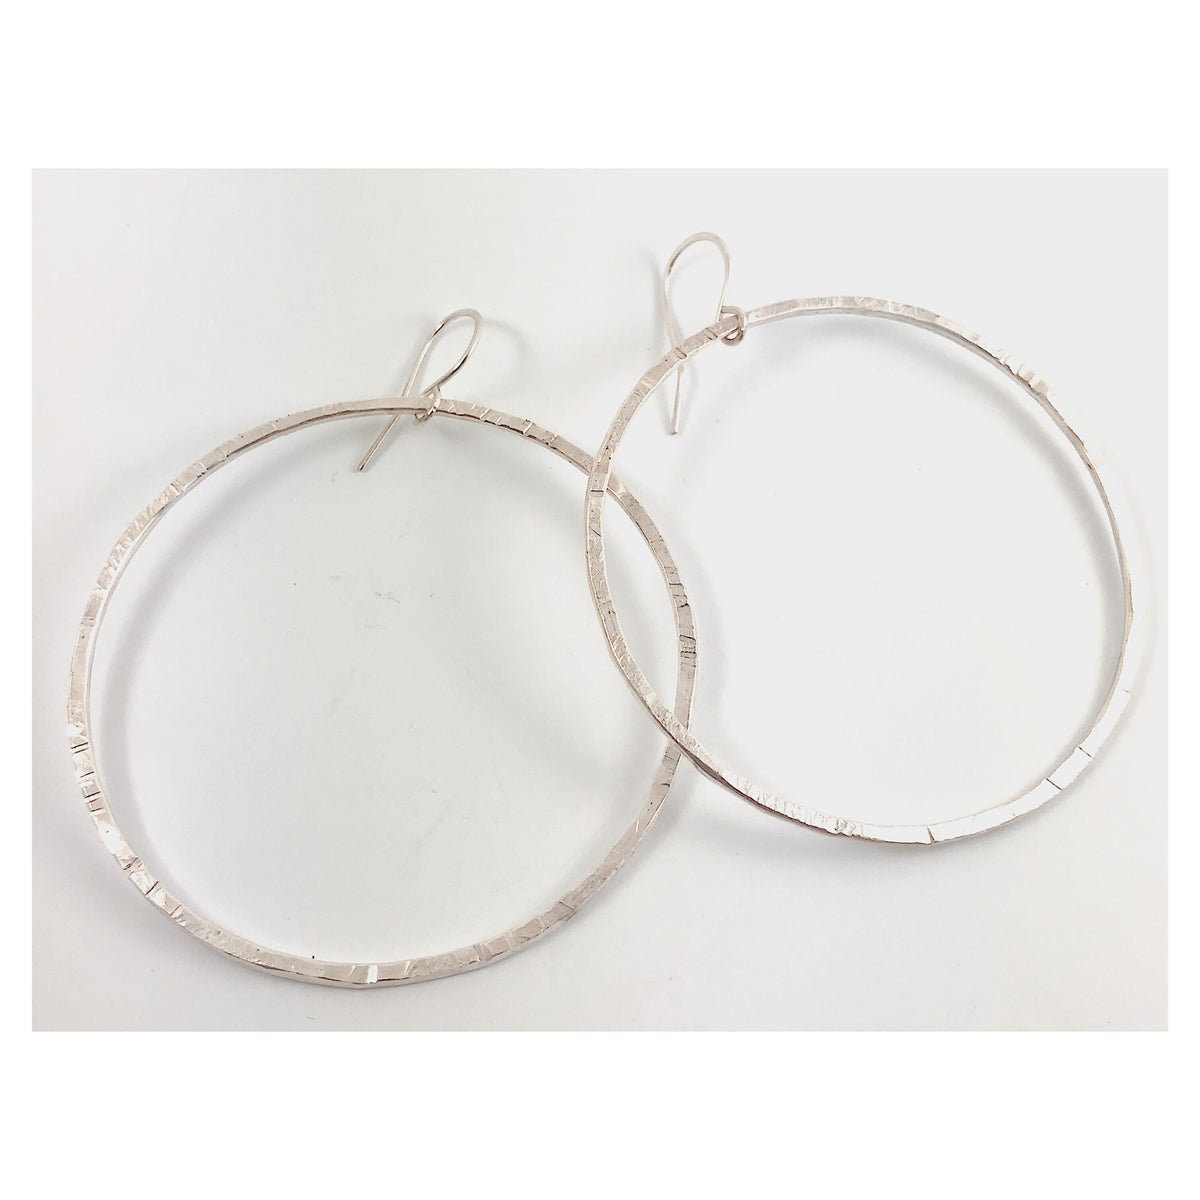 Image of Extra Large/Thick Textured Silver Hoops